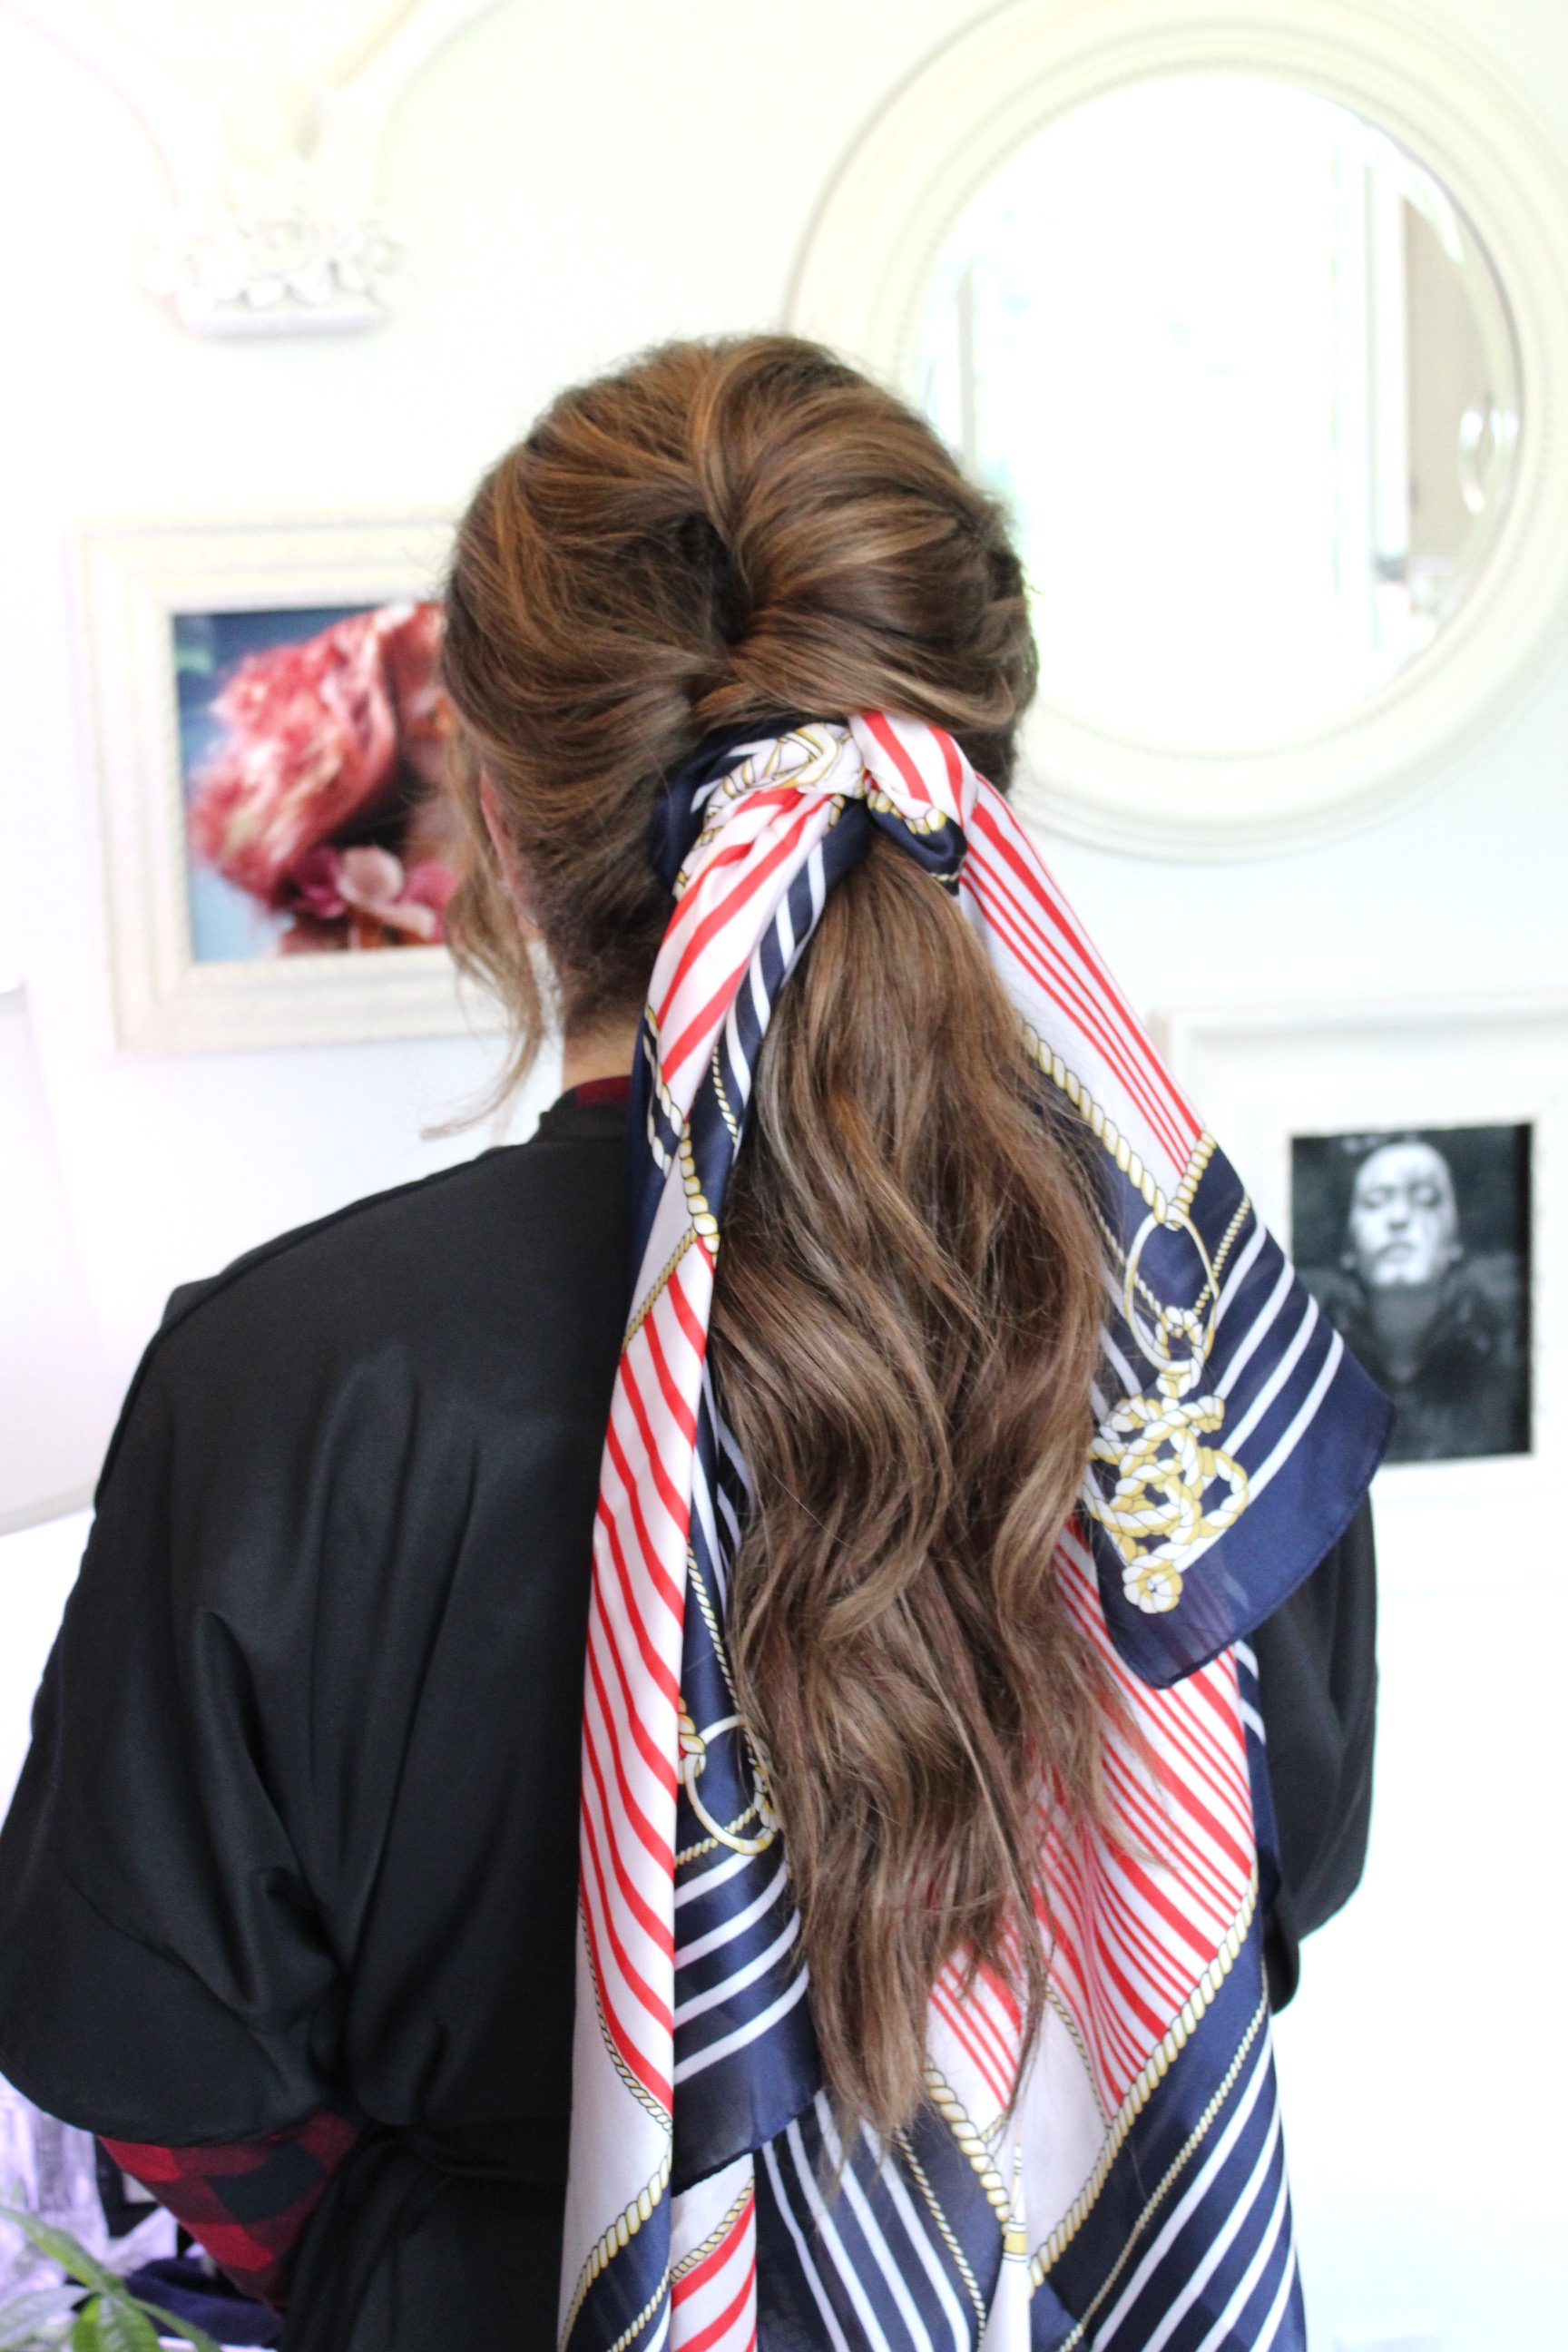 One of my favorite, easy ways to sass up an easy summer style- silk scarves. Make sure they're real silk- it grips and makes a much more secure knot than synthetic fabric.